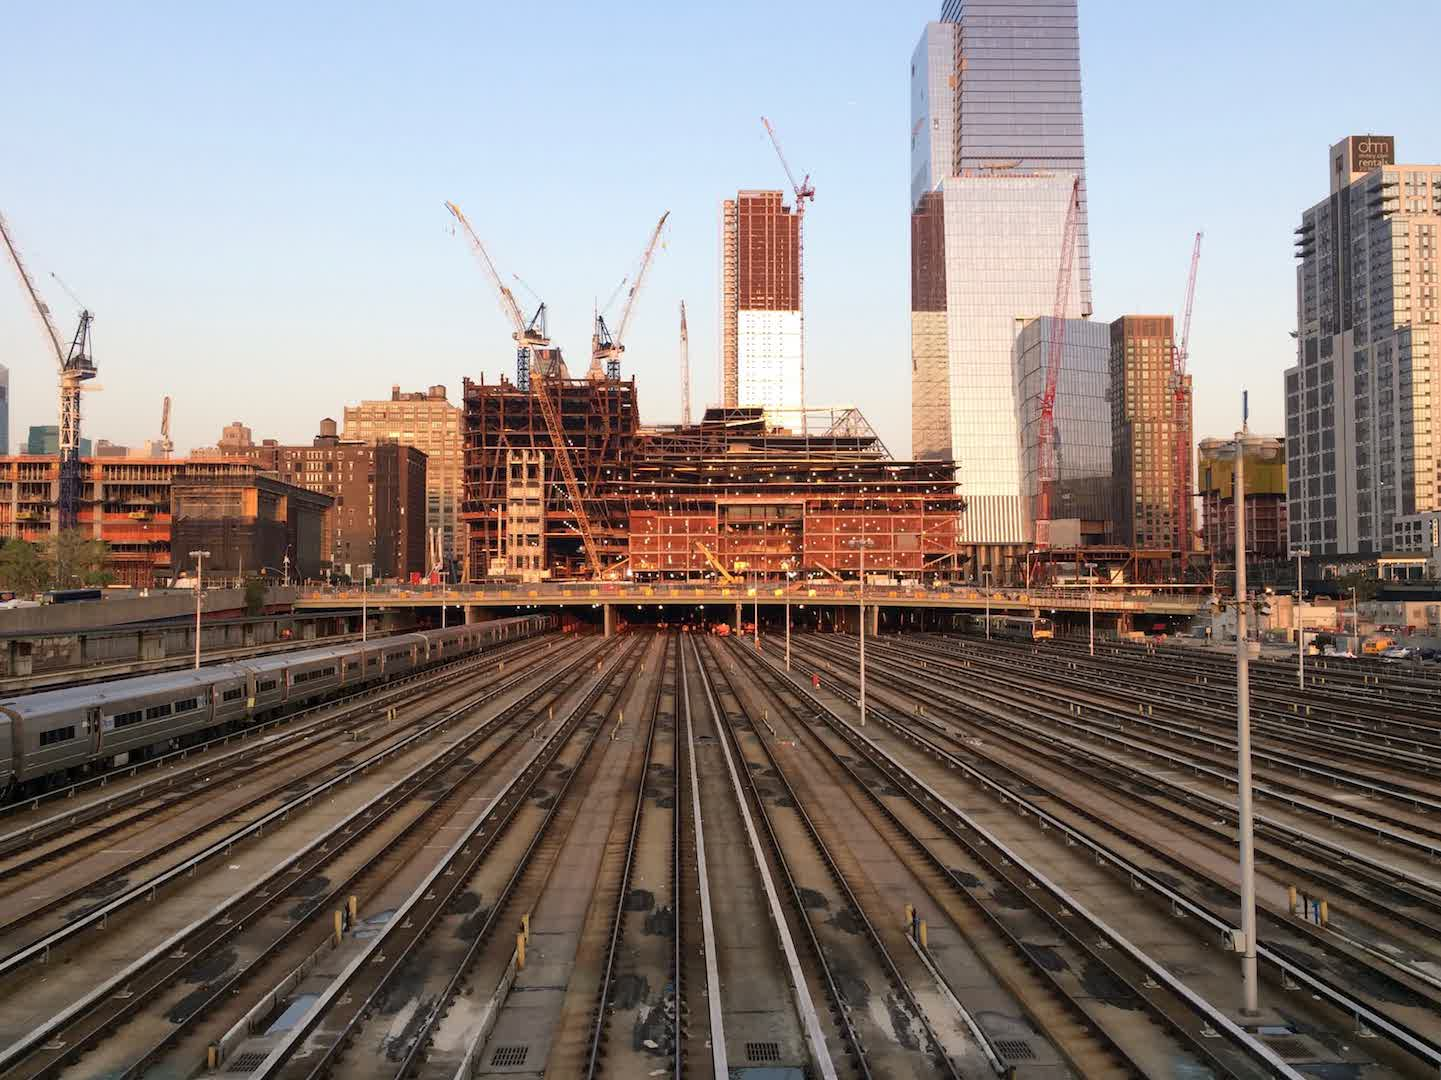 A picture of many parallel subway tracks, with cranes building skyscrapers in the background.